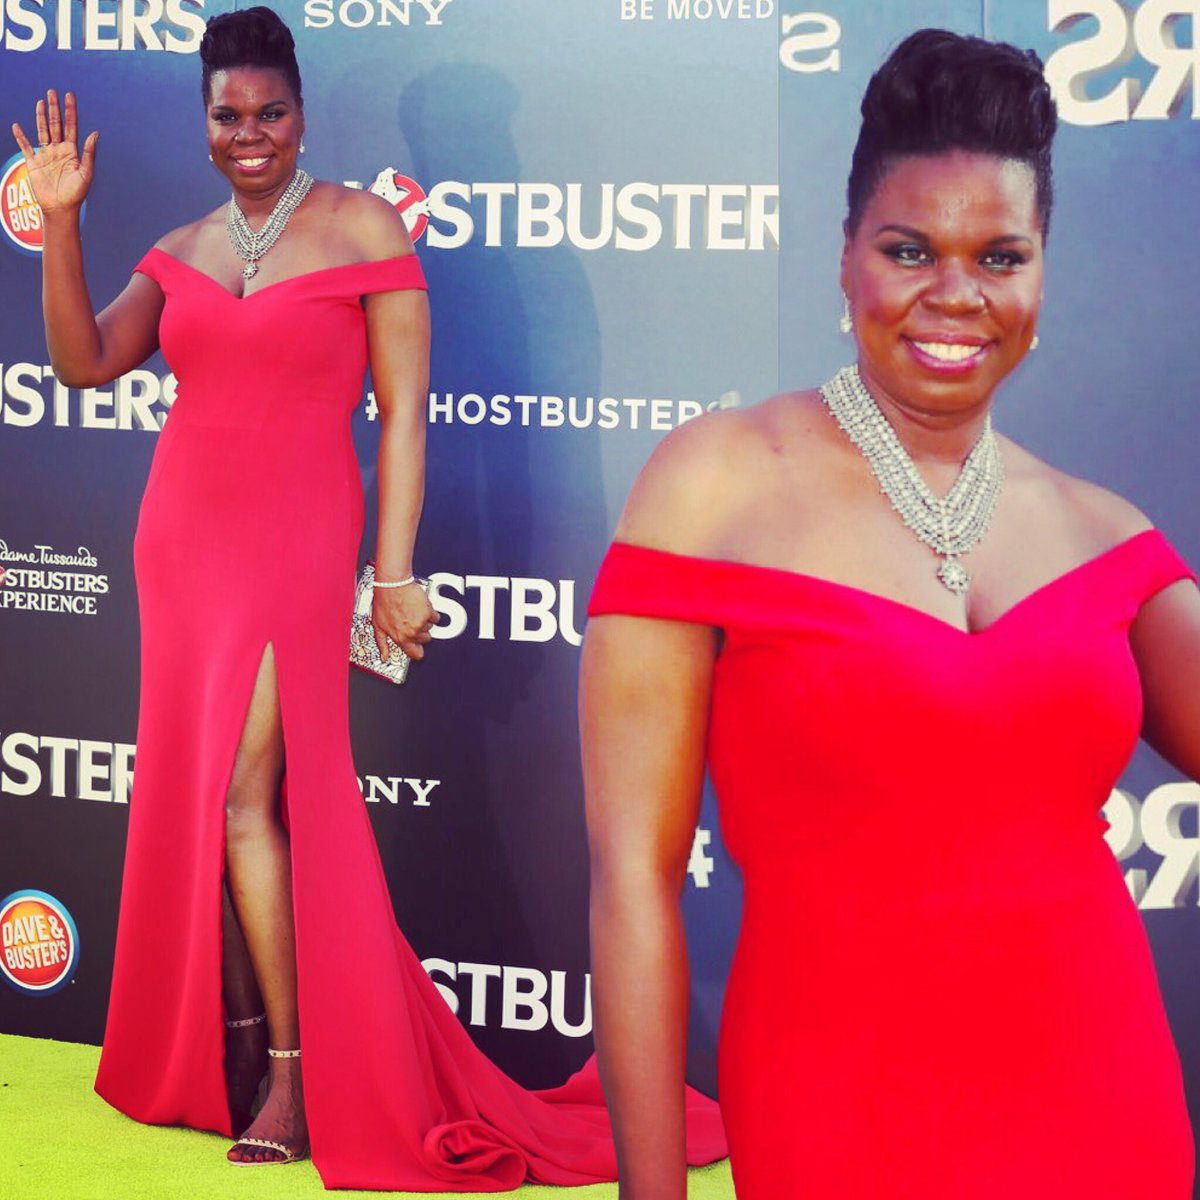 Happy Birthday to this amazing and beautiful women Leslie Jones! Hope you have the best day ever! @Lesdoggg 🍰🍾🍾🎊🎉🎁🎈